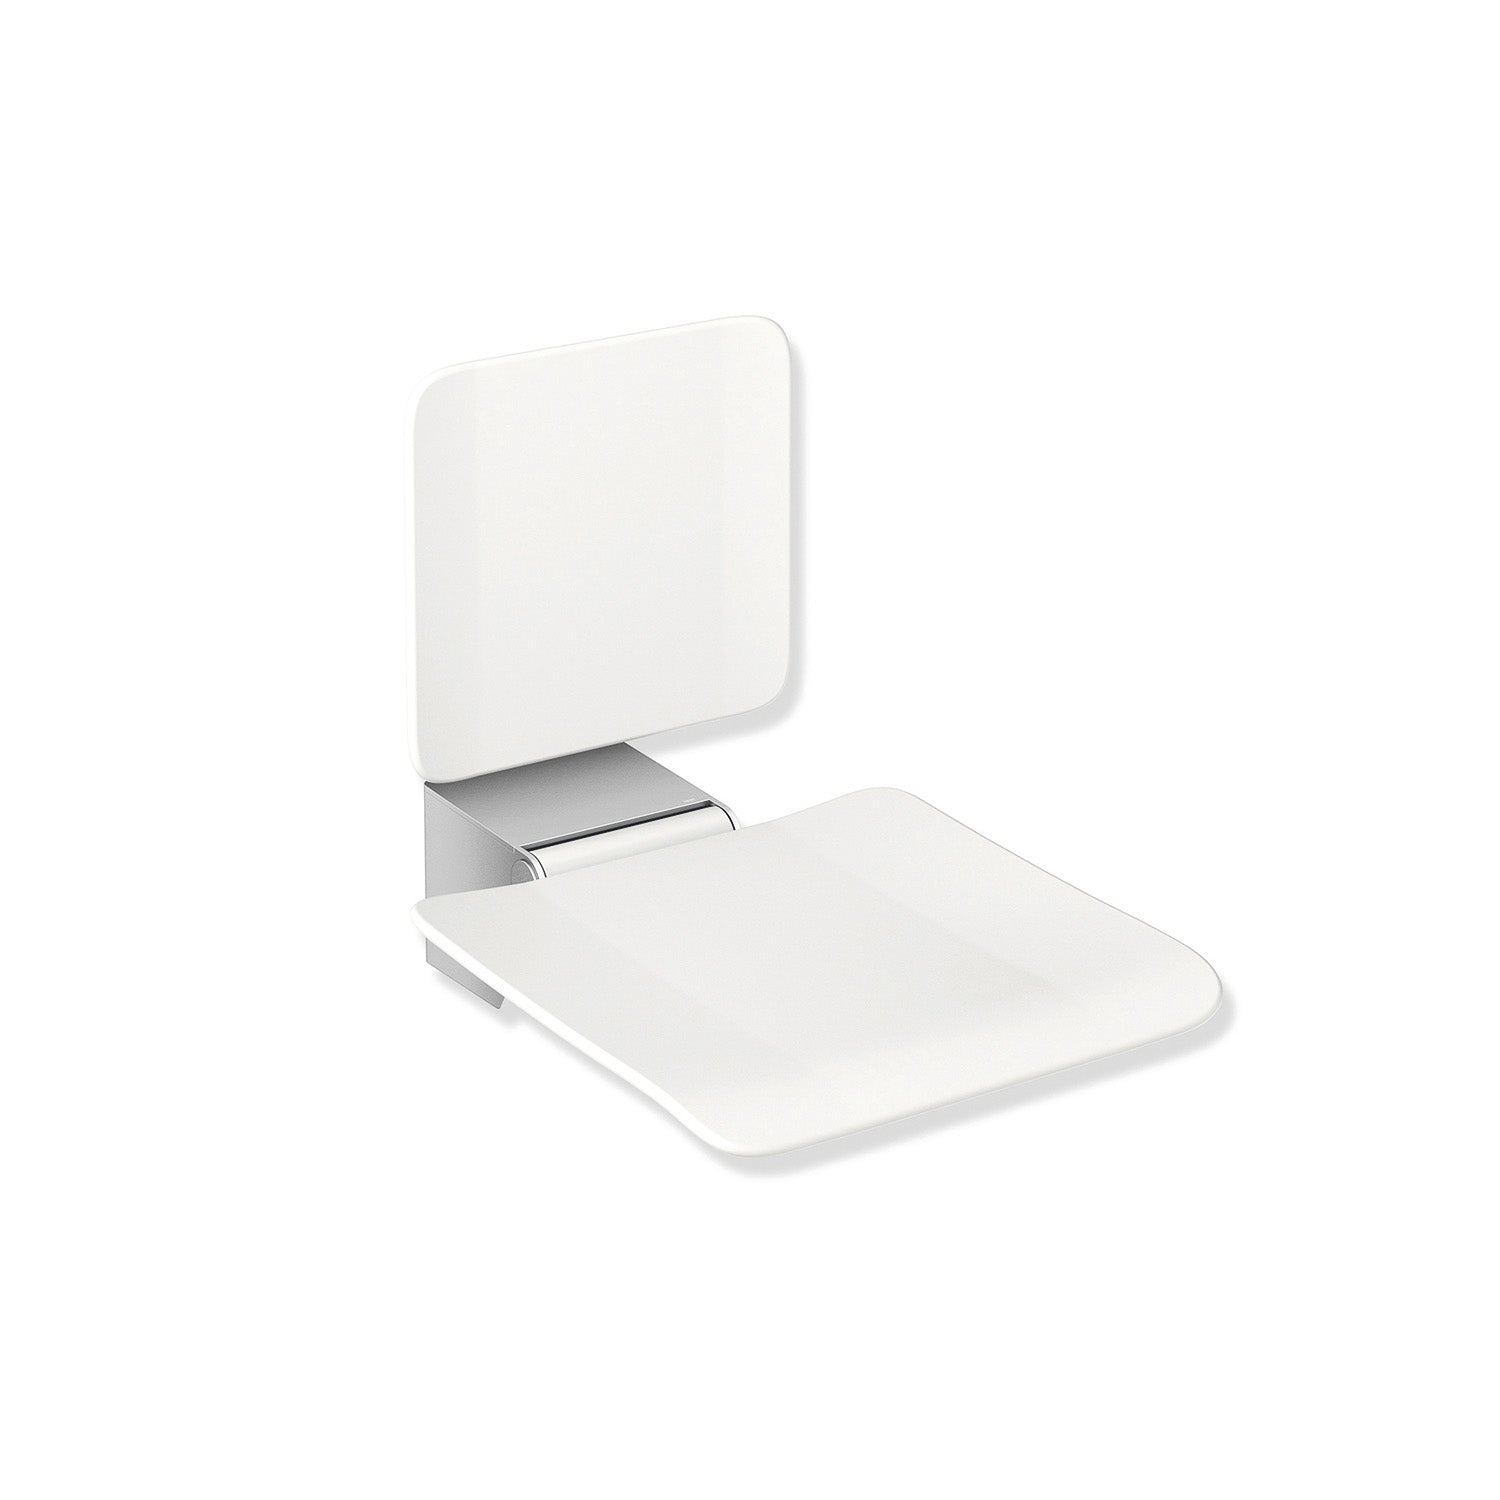 Freestyle Fixed Shower Seat with a Backrest in a white seat and satin steel finish bracket on a white background